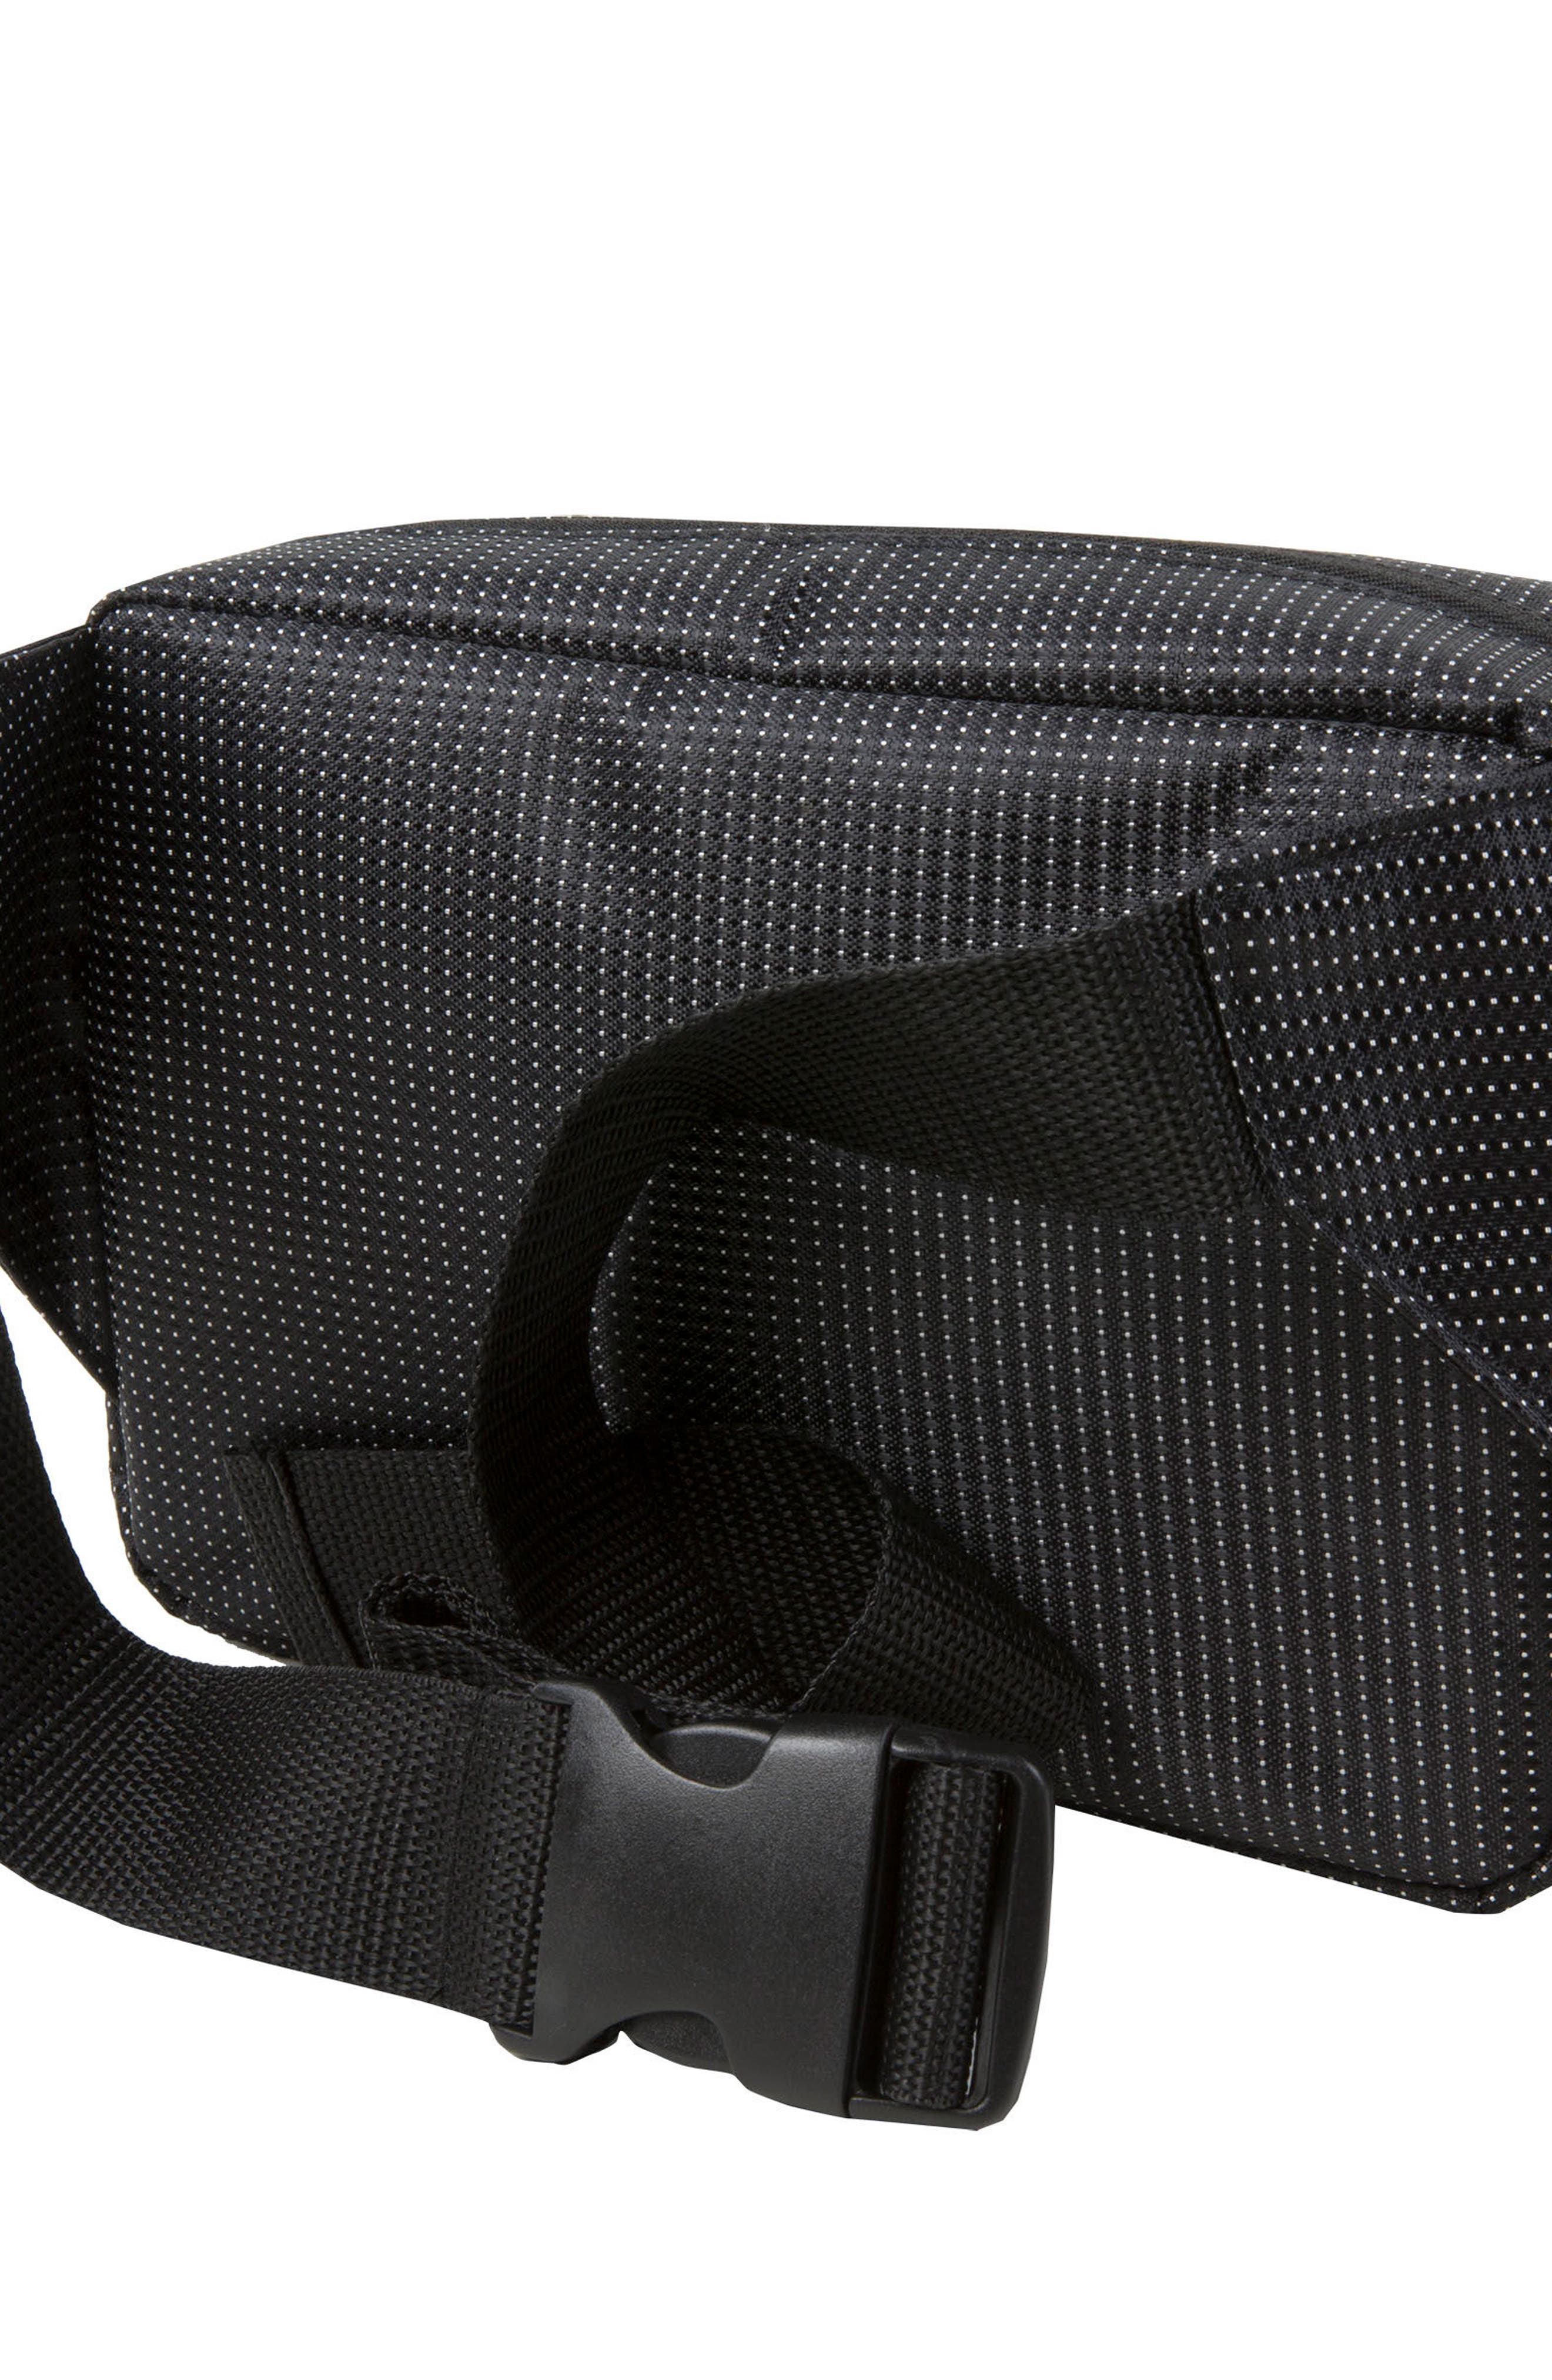 Alternate Image 3  - HEX Aspect Collection Water Resistant Waist Pack